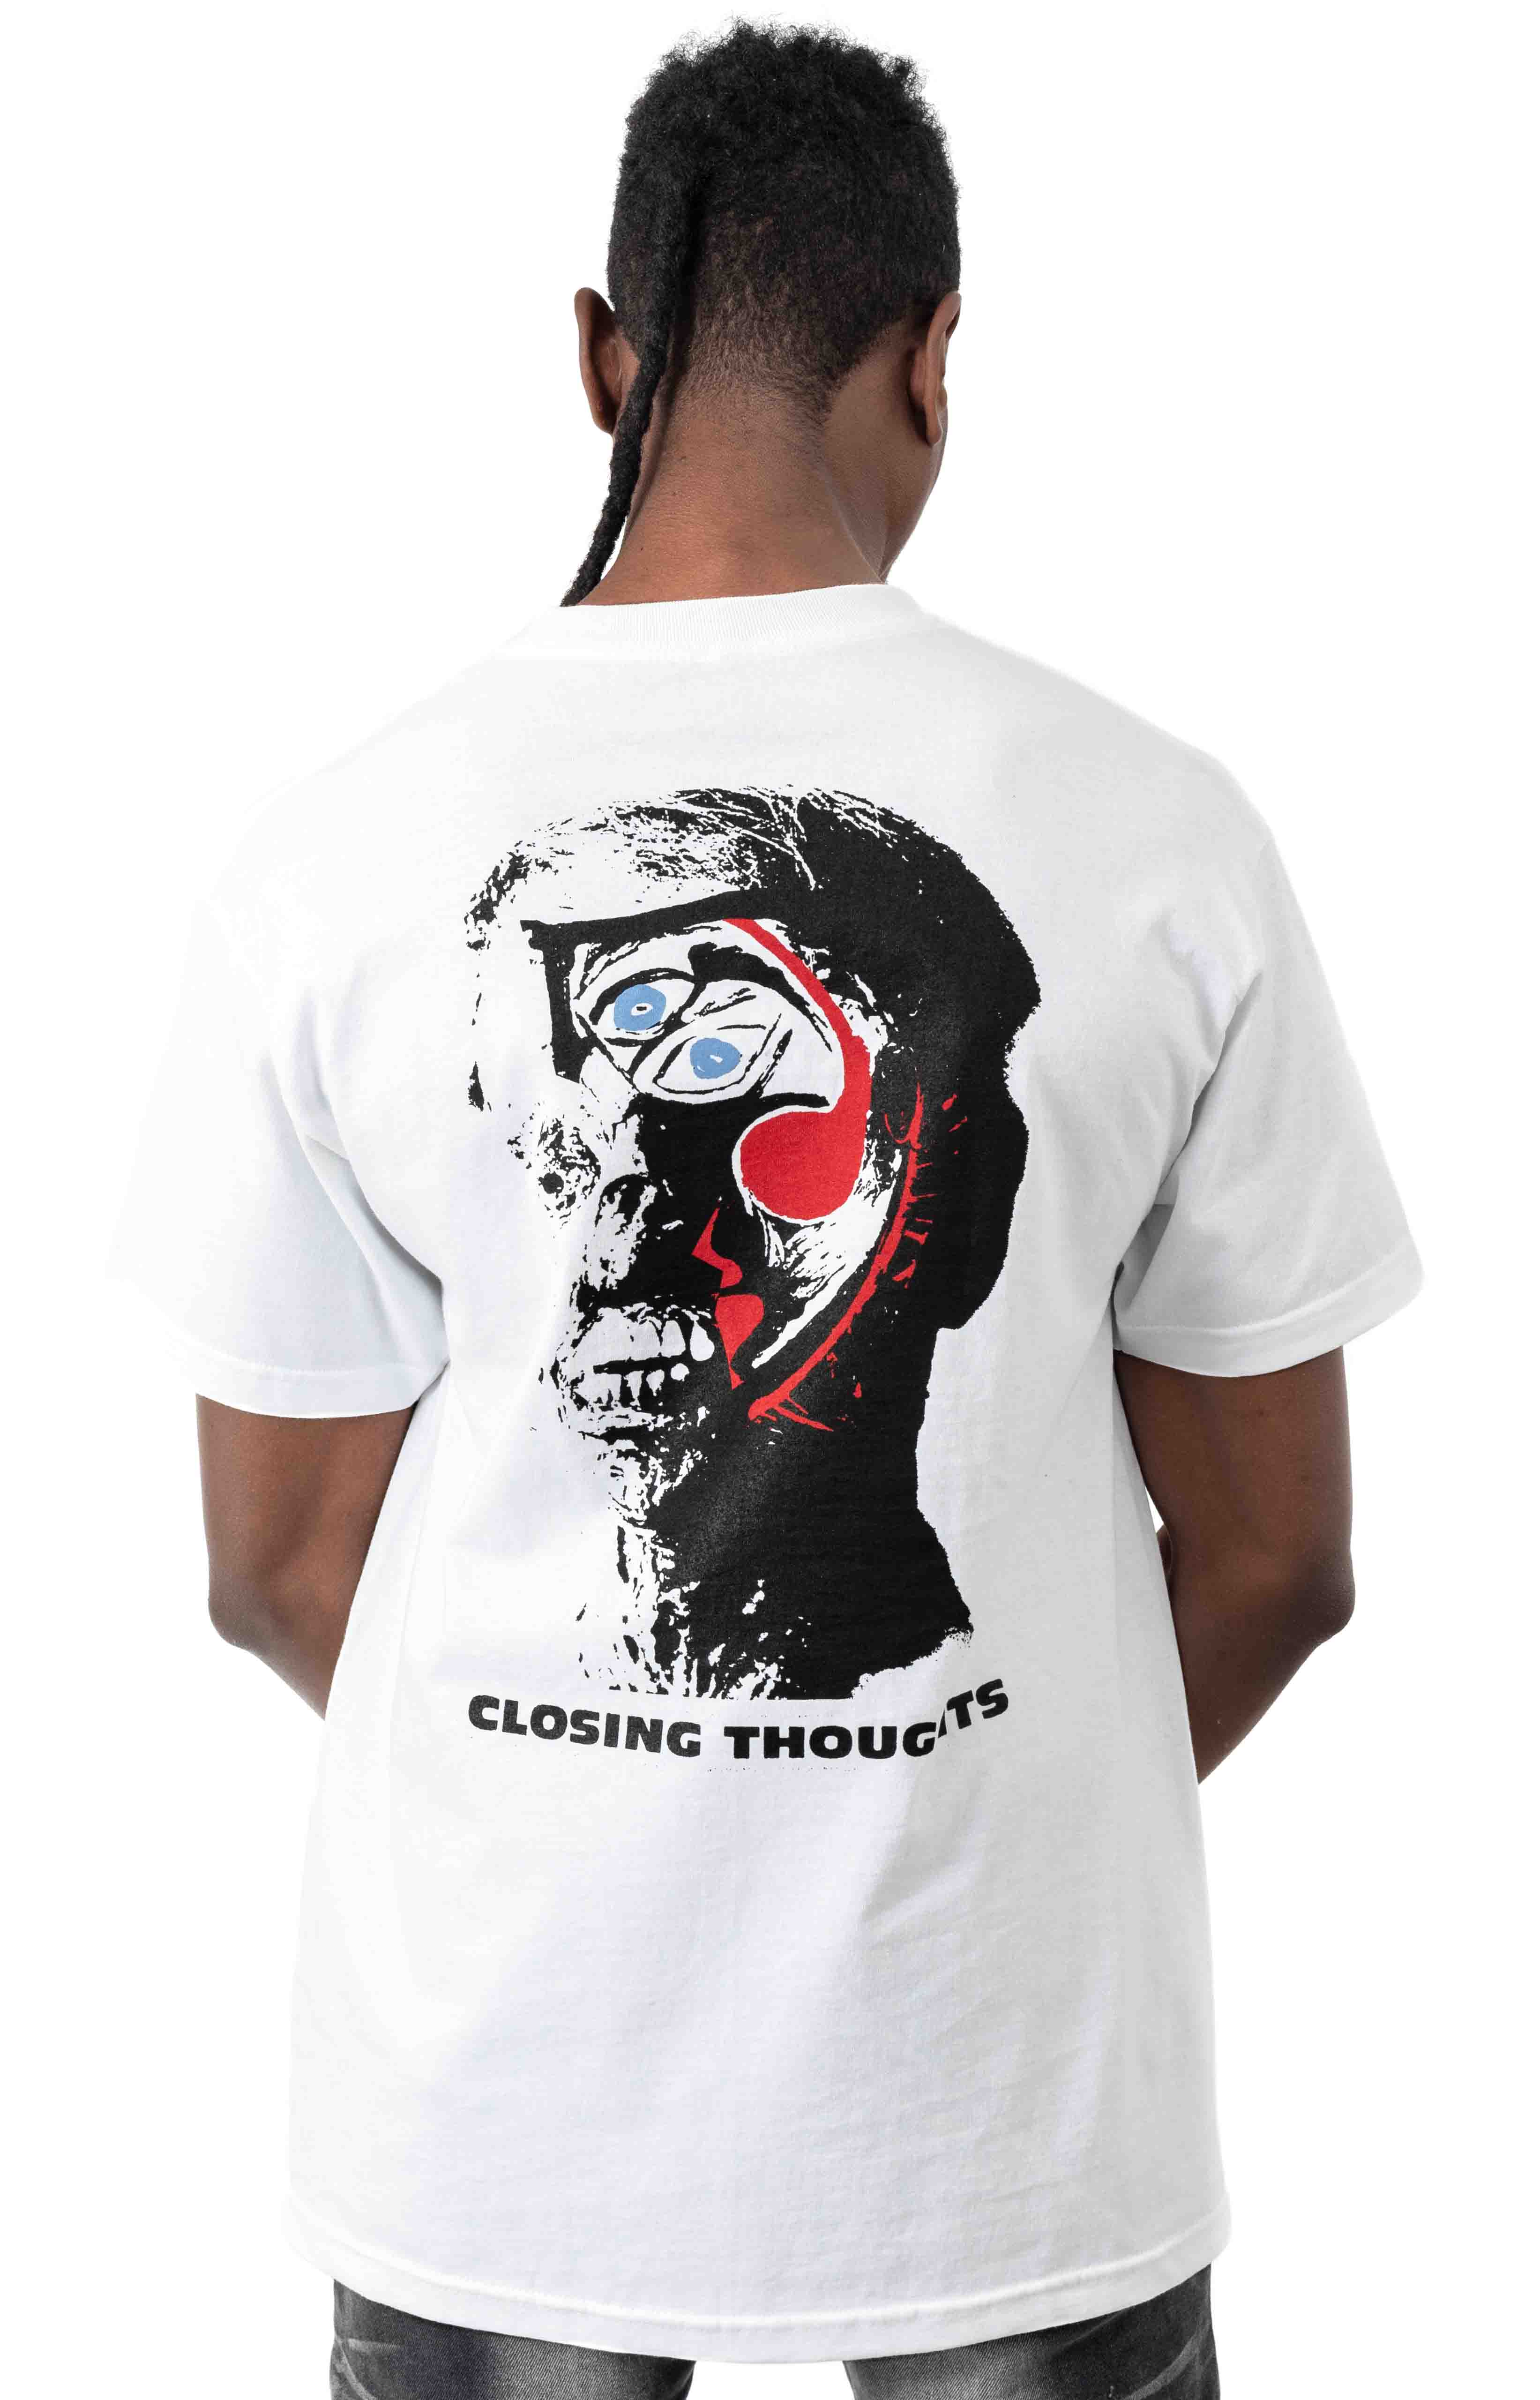 Closing Thoughts T-Shirt - White  3